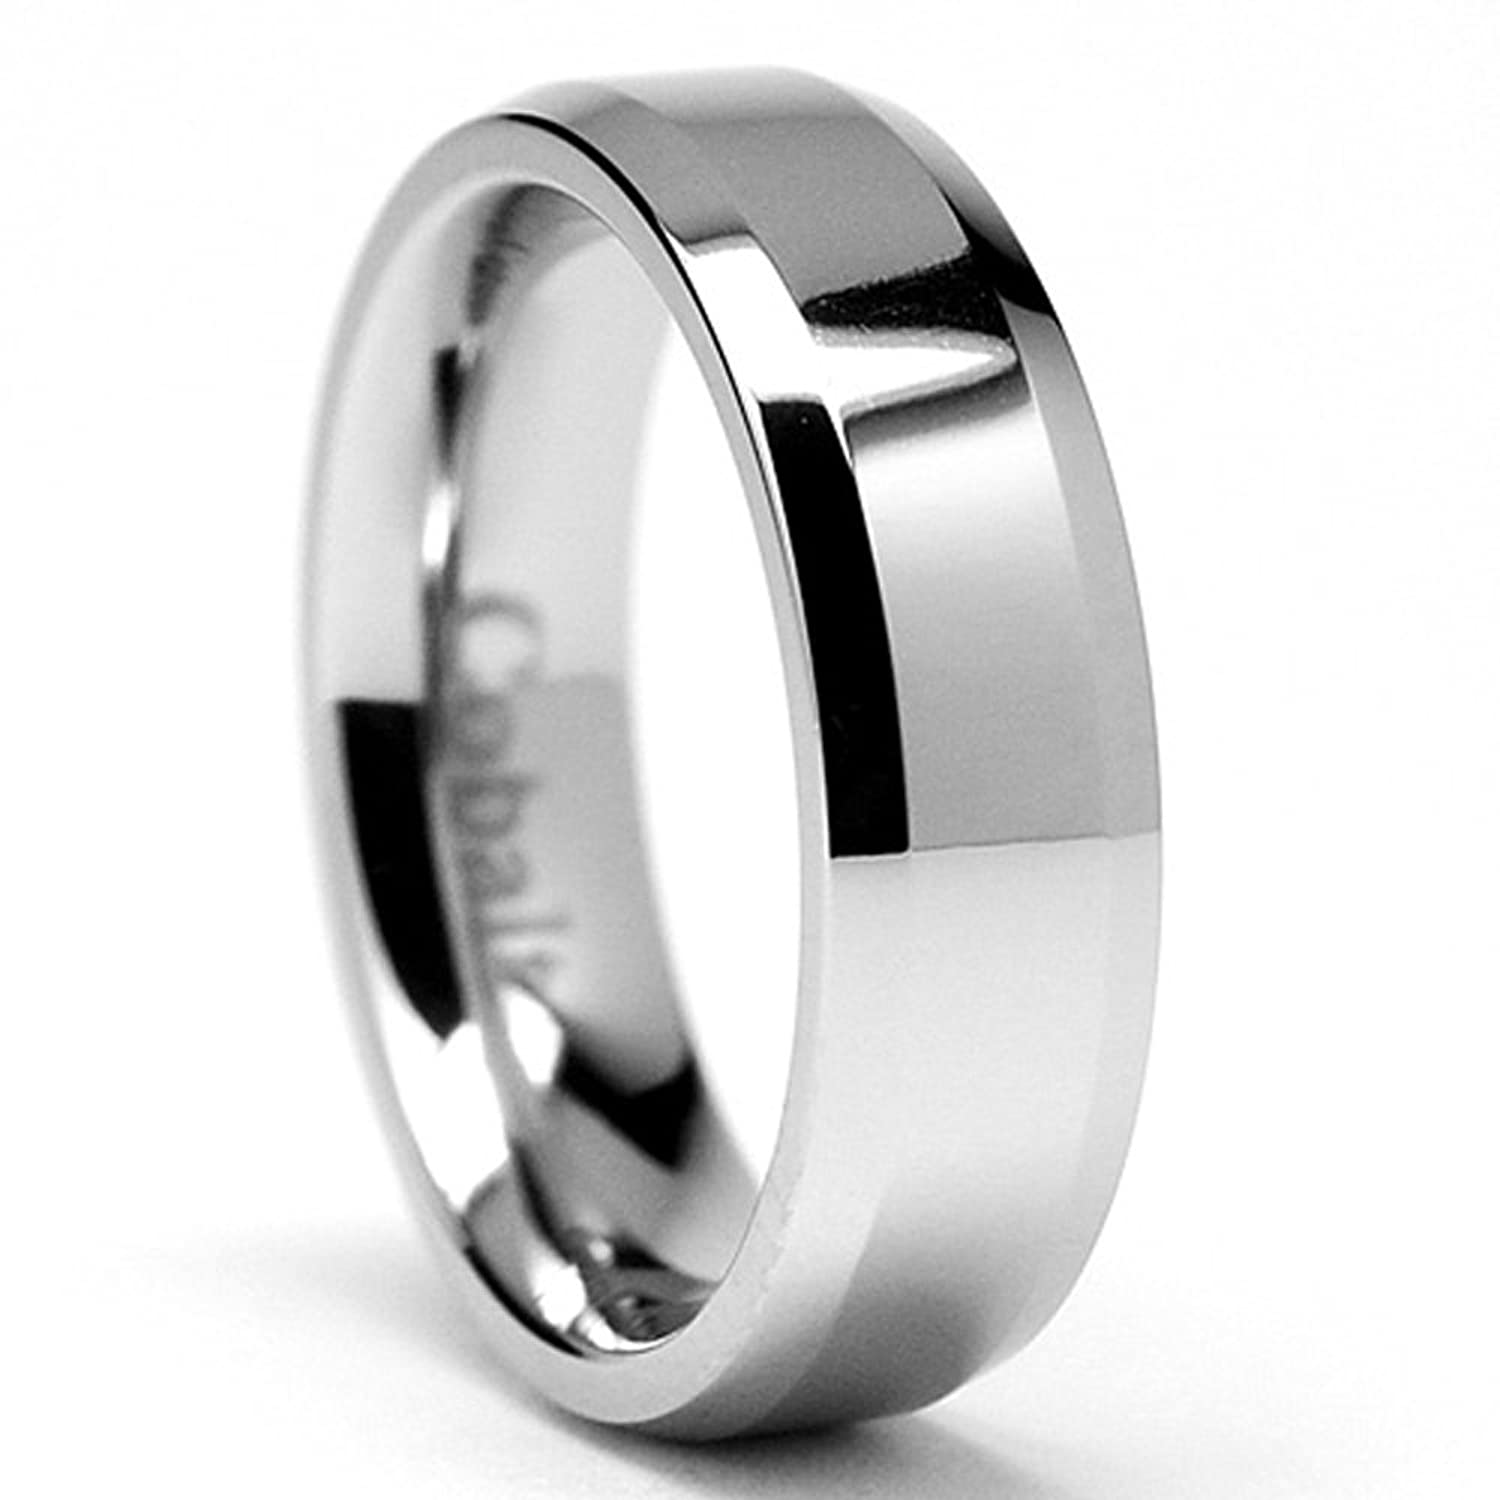 6MM High Polish Mens Cobalt Chrome Ring Wedding Band Sizes 6 to 12